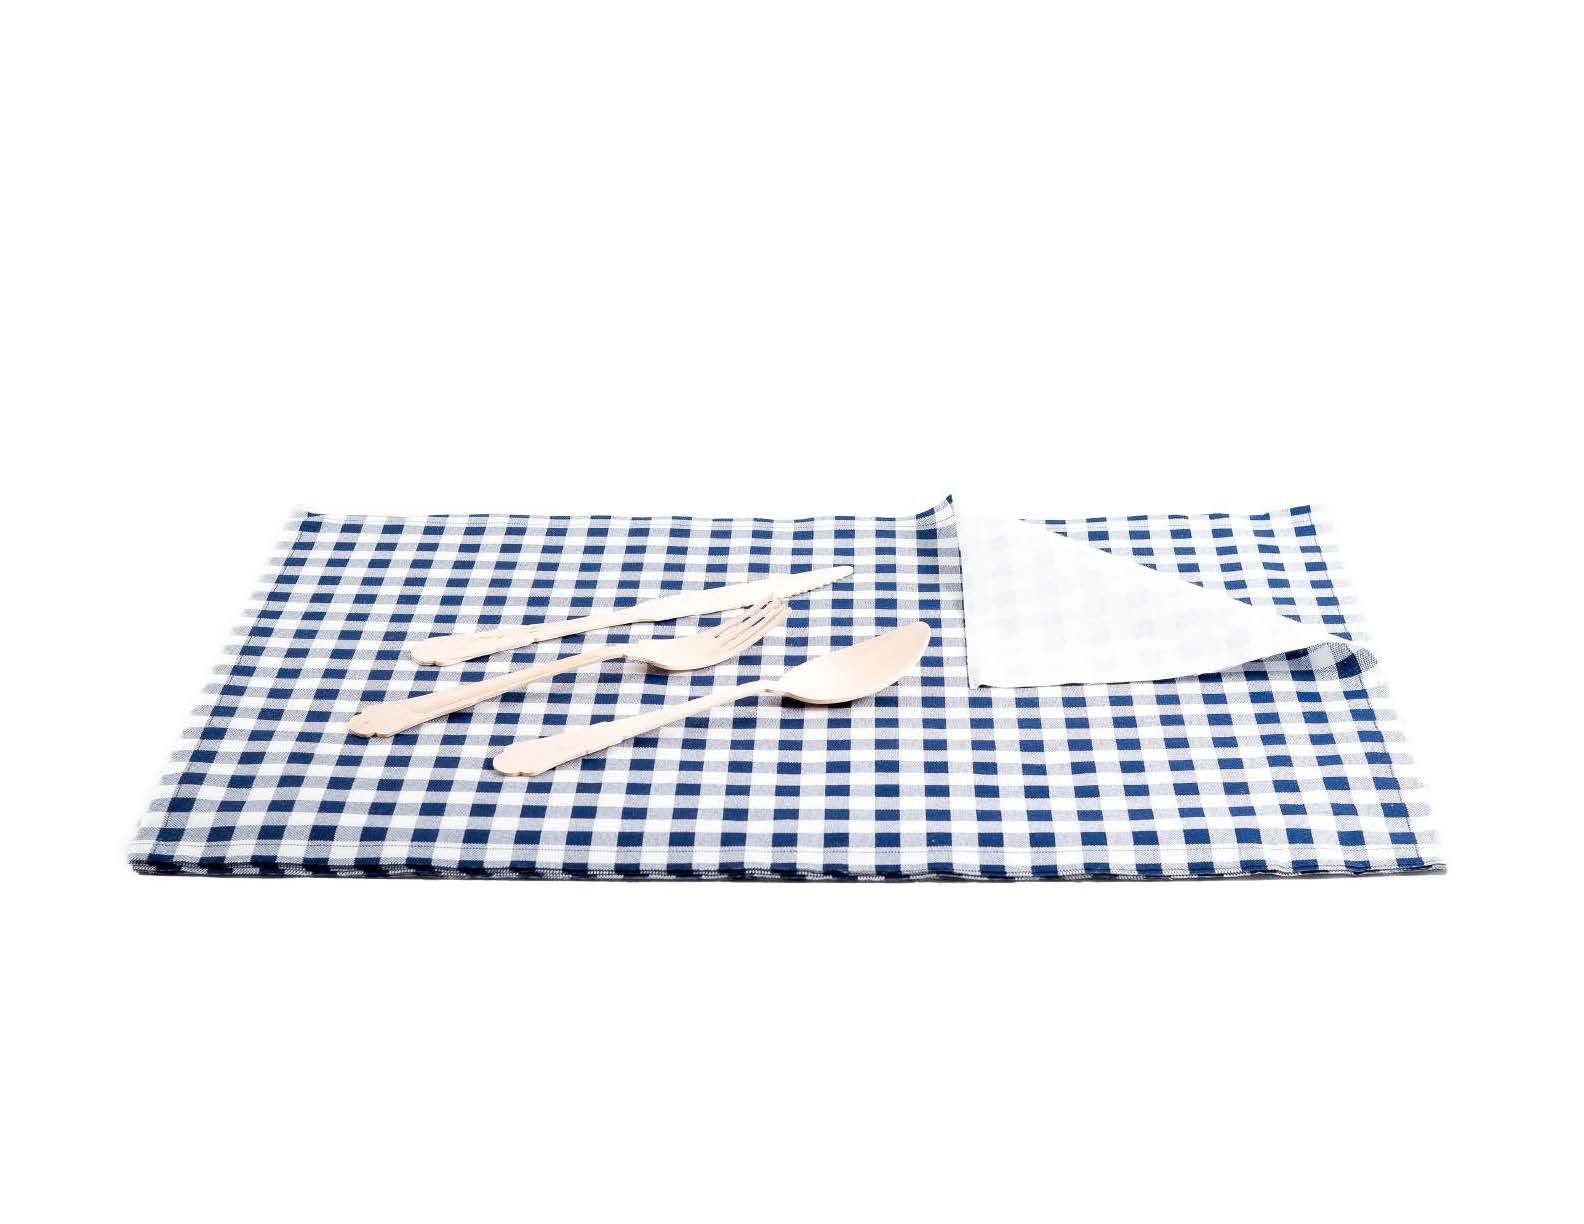 "Blue Vichy Cotton Printed Placemat - 18.9"" x 12.6"" - 120 Units"